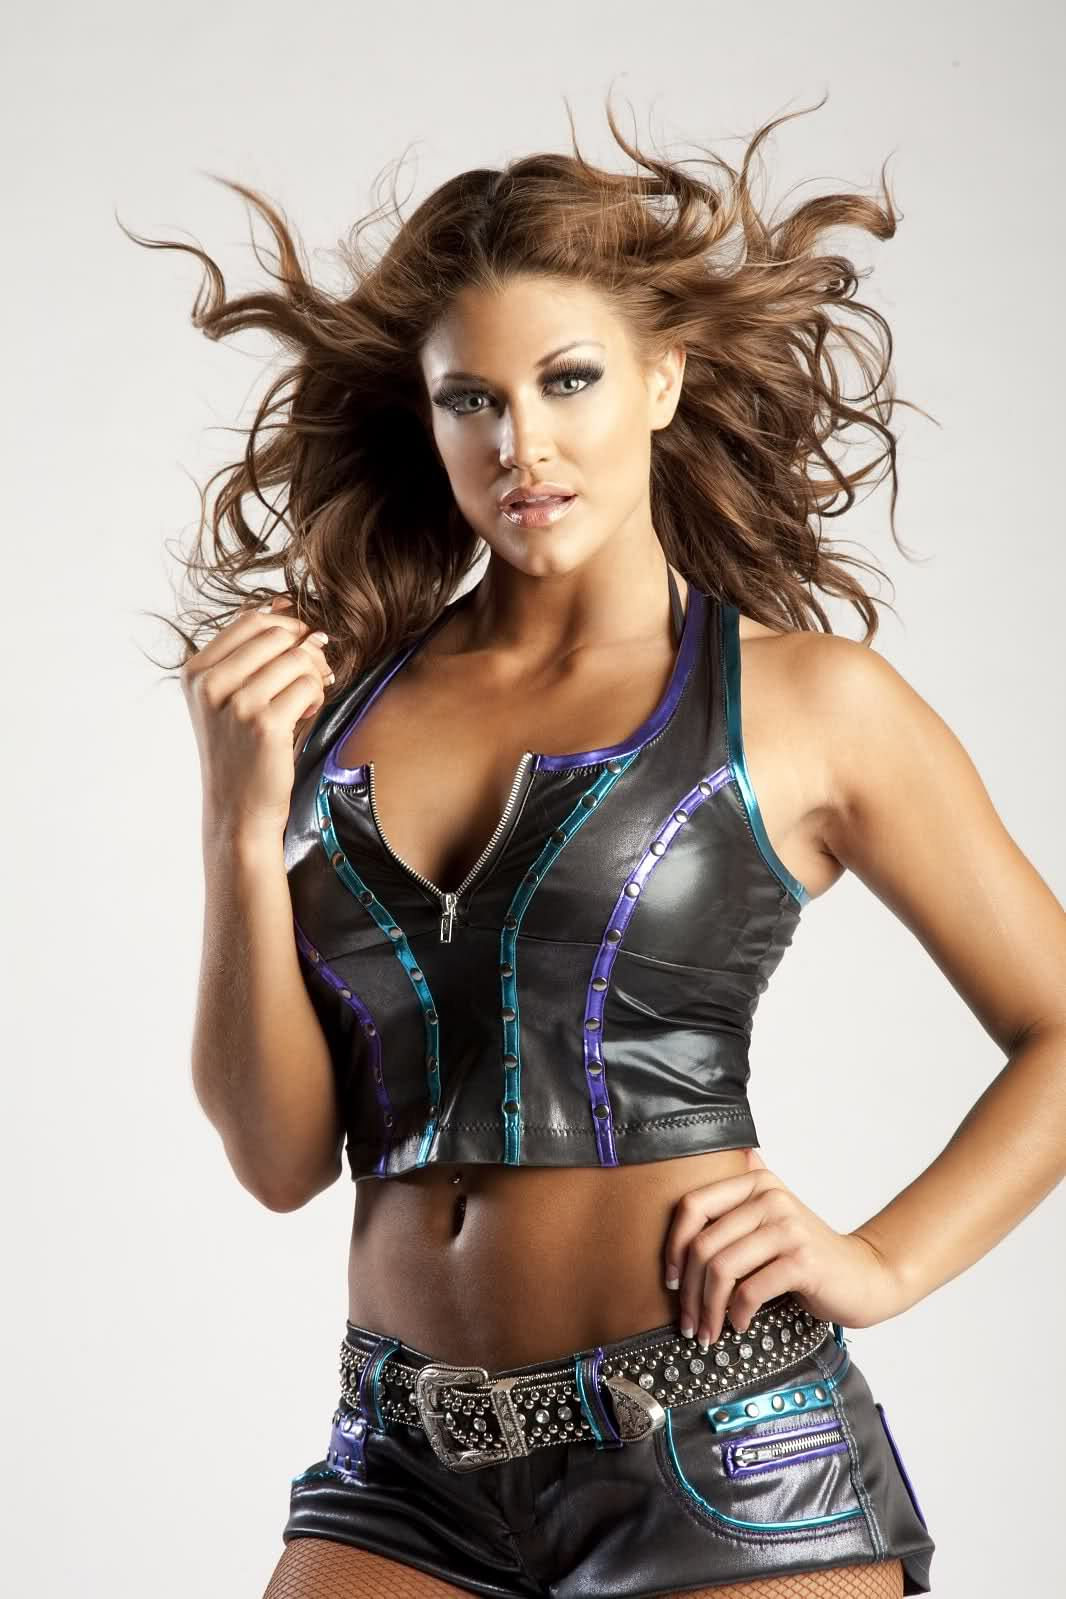 Right! eve torres nude breast can recommend